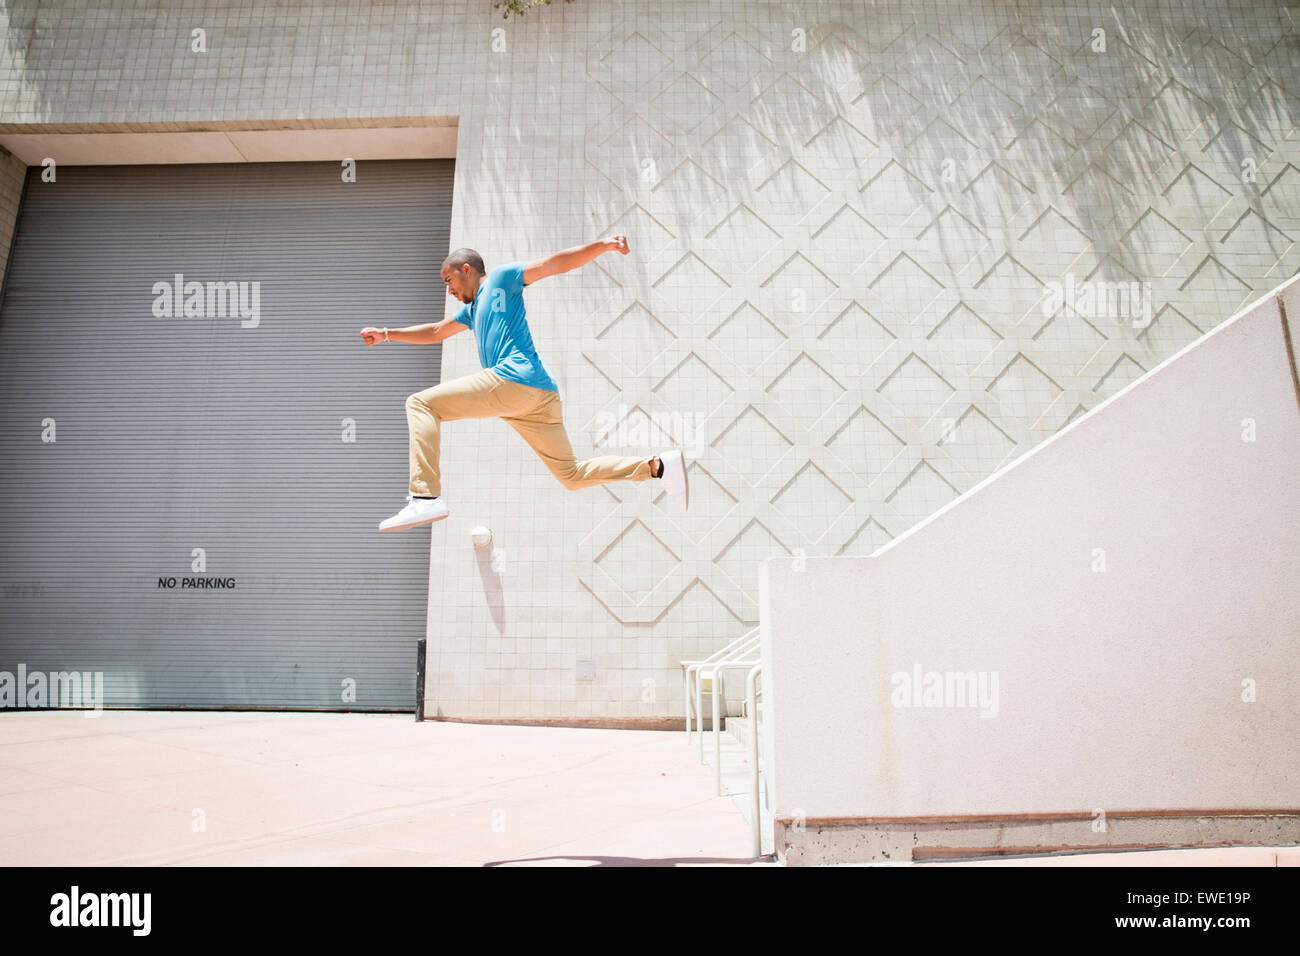 Young man jumping down a stair parcour parkour - Stock Image